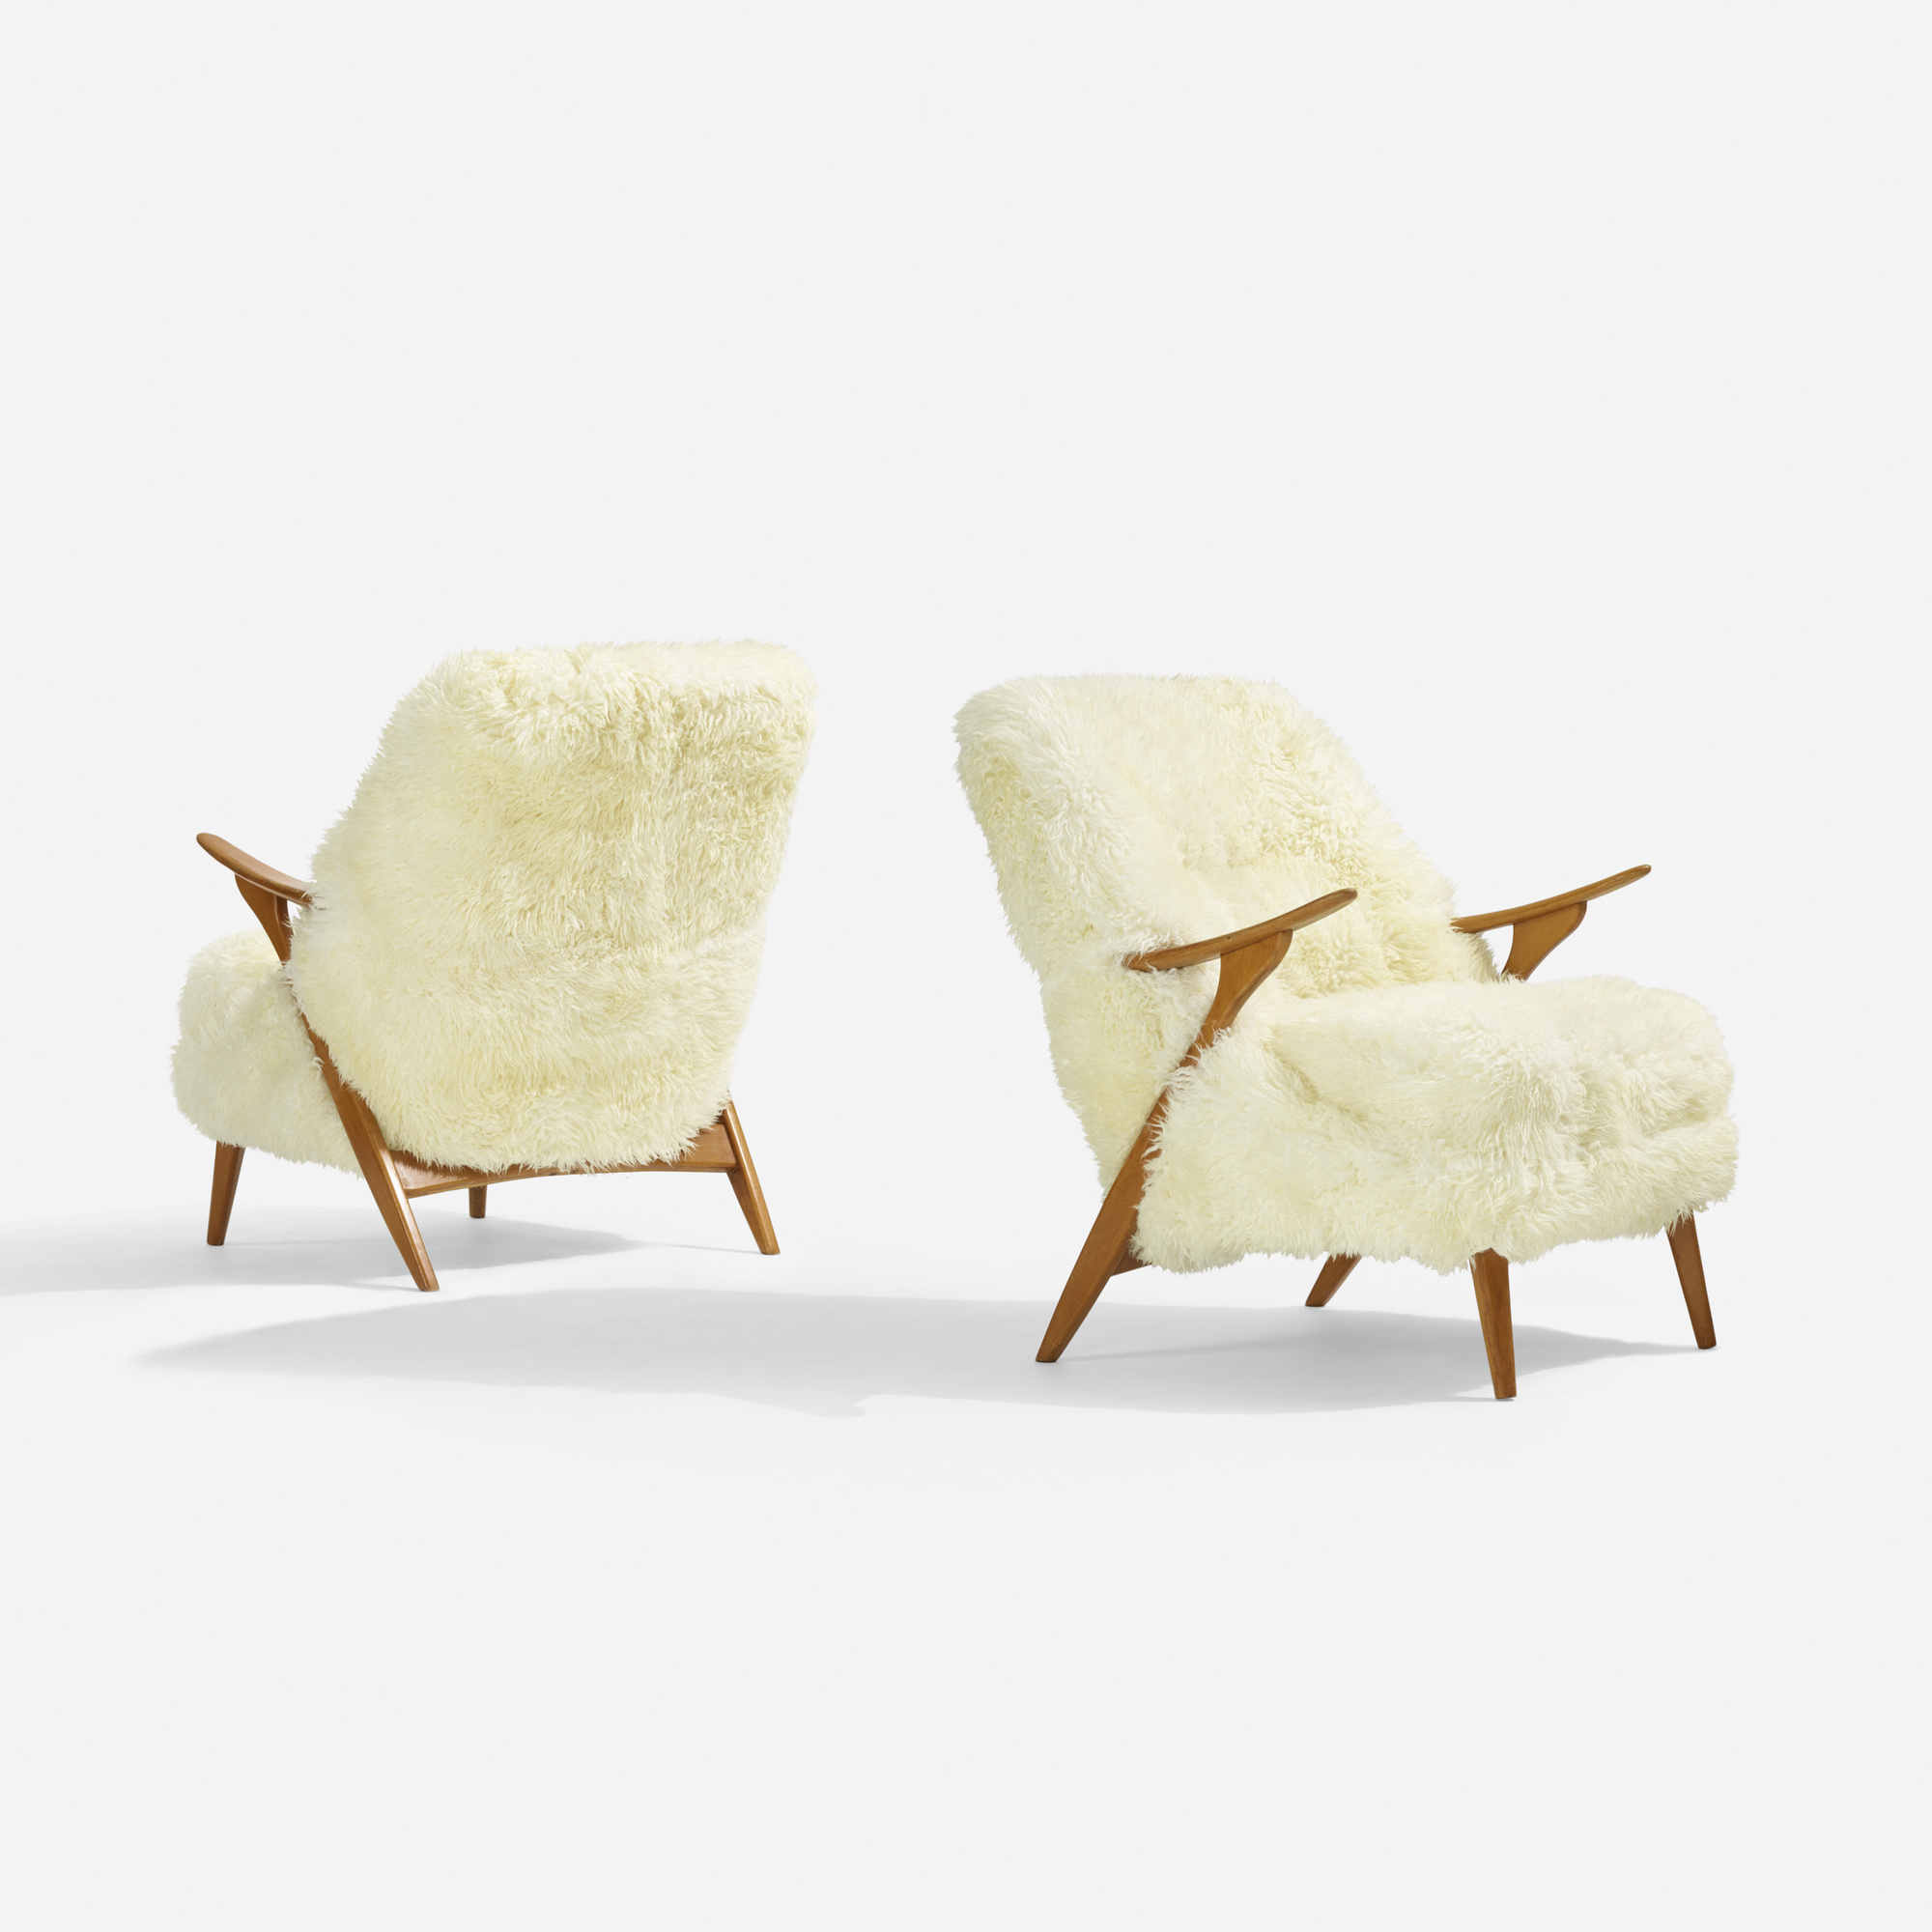 121: Svante Skogh / armchairs, pair (1 of 3)